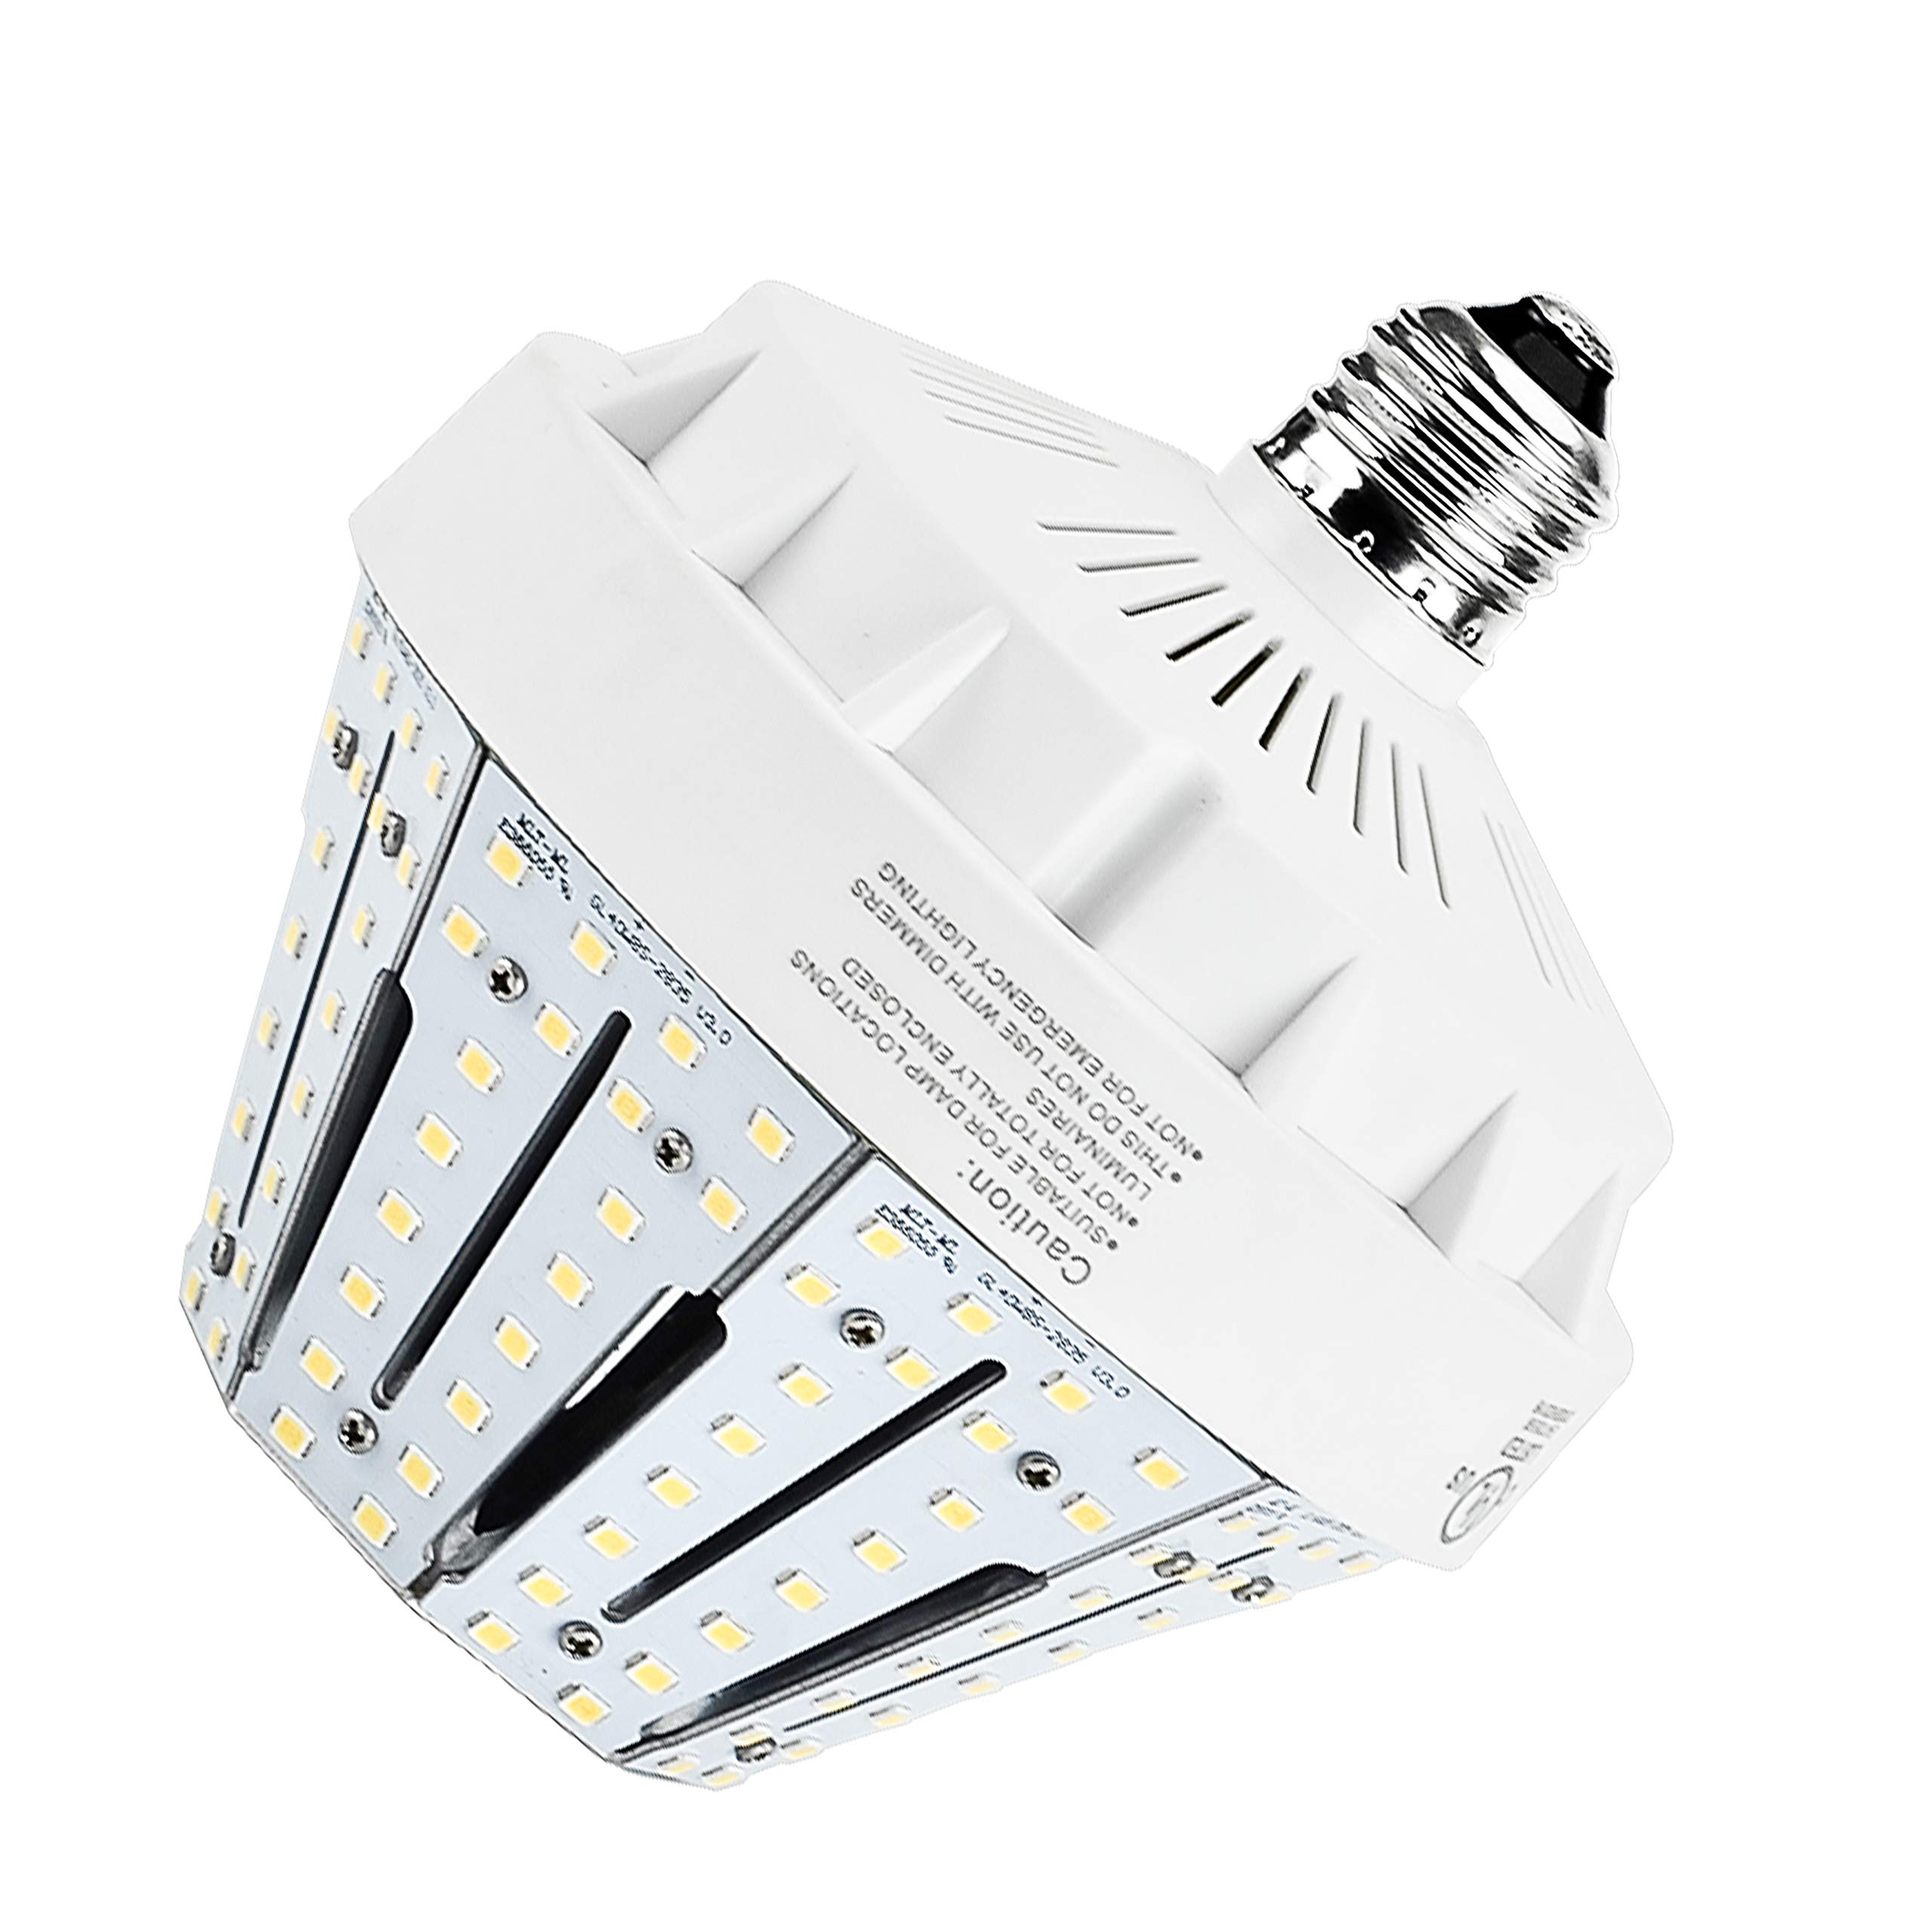 Hawks 30W LED Corn Light Bulb Equivalent to 100W E26 Medium Base Pure White 4000K Super Bright Garden Lighting Street Lamp 4946 Lumens for Porch Canopy Barn